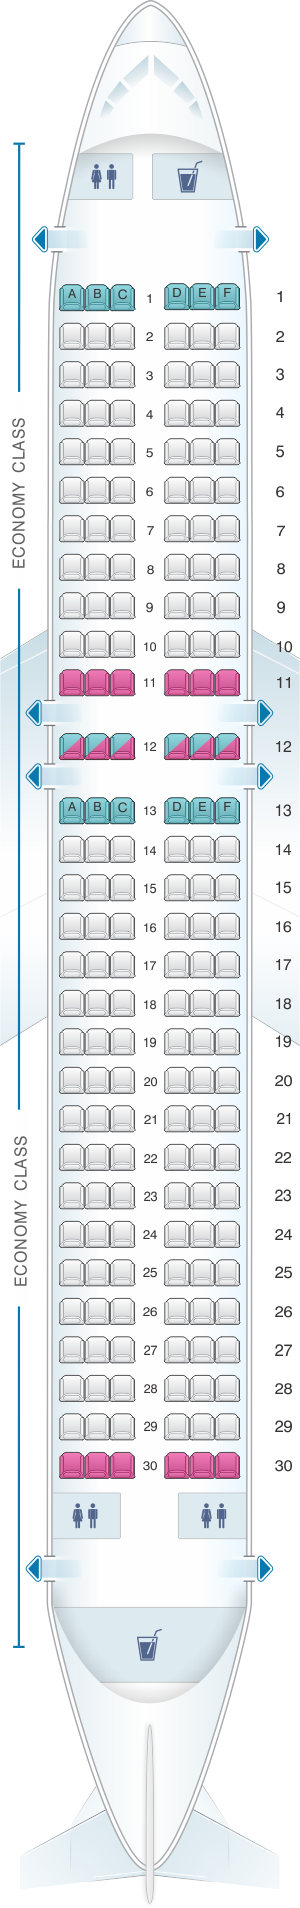 Seat map for Airbus A320